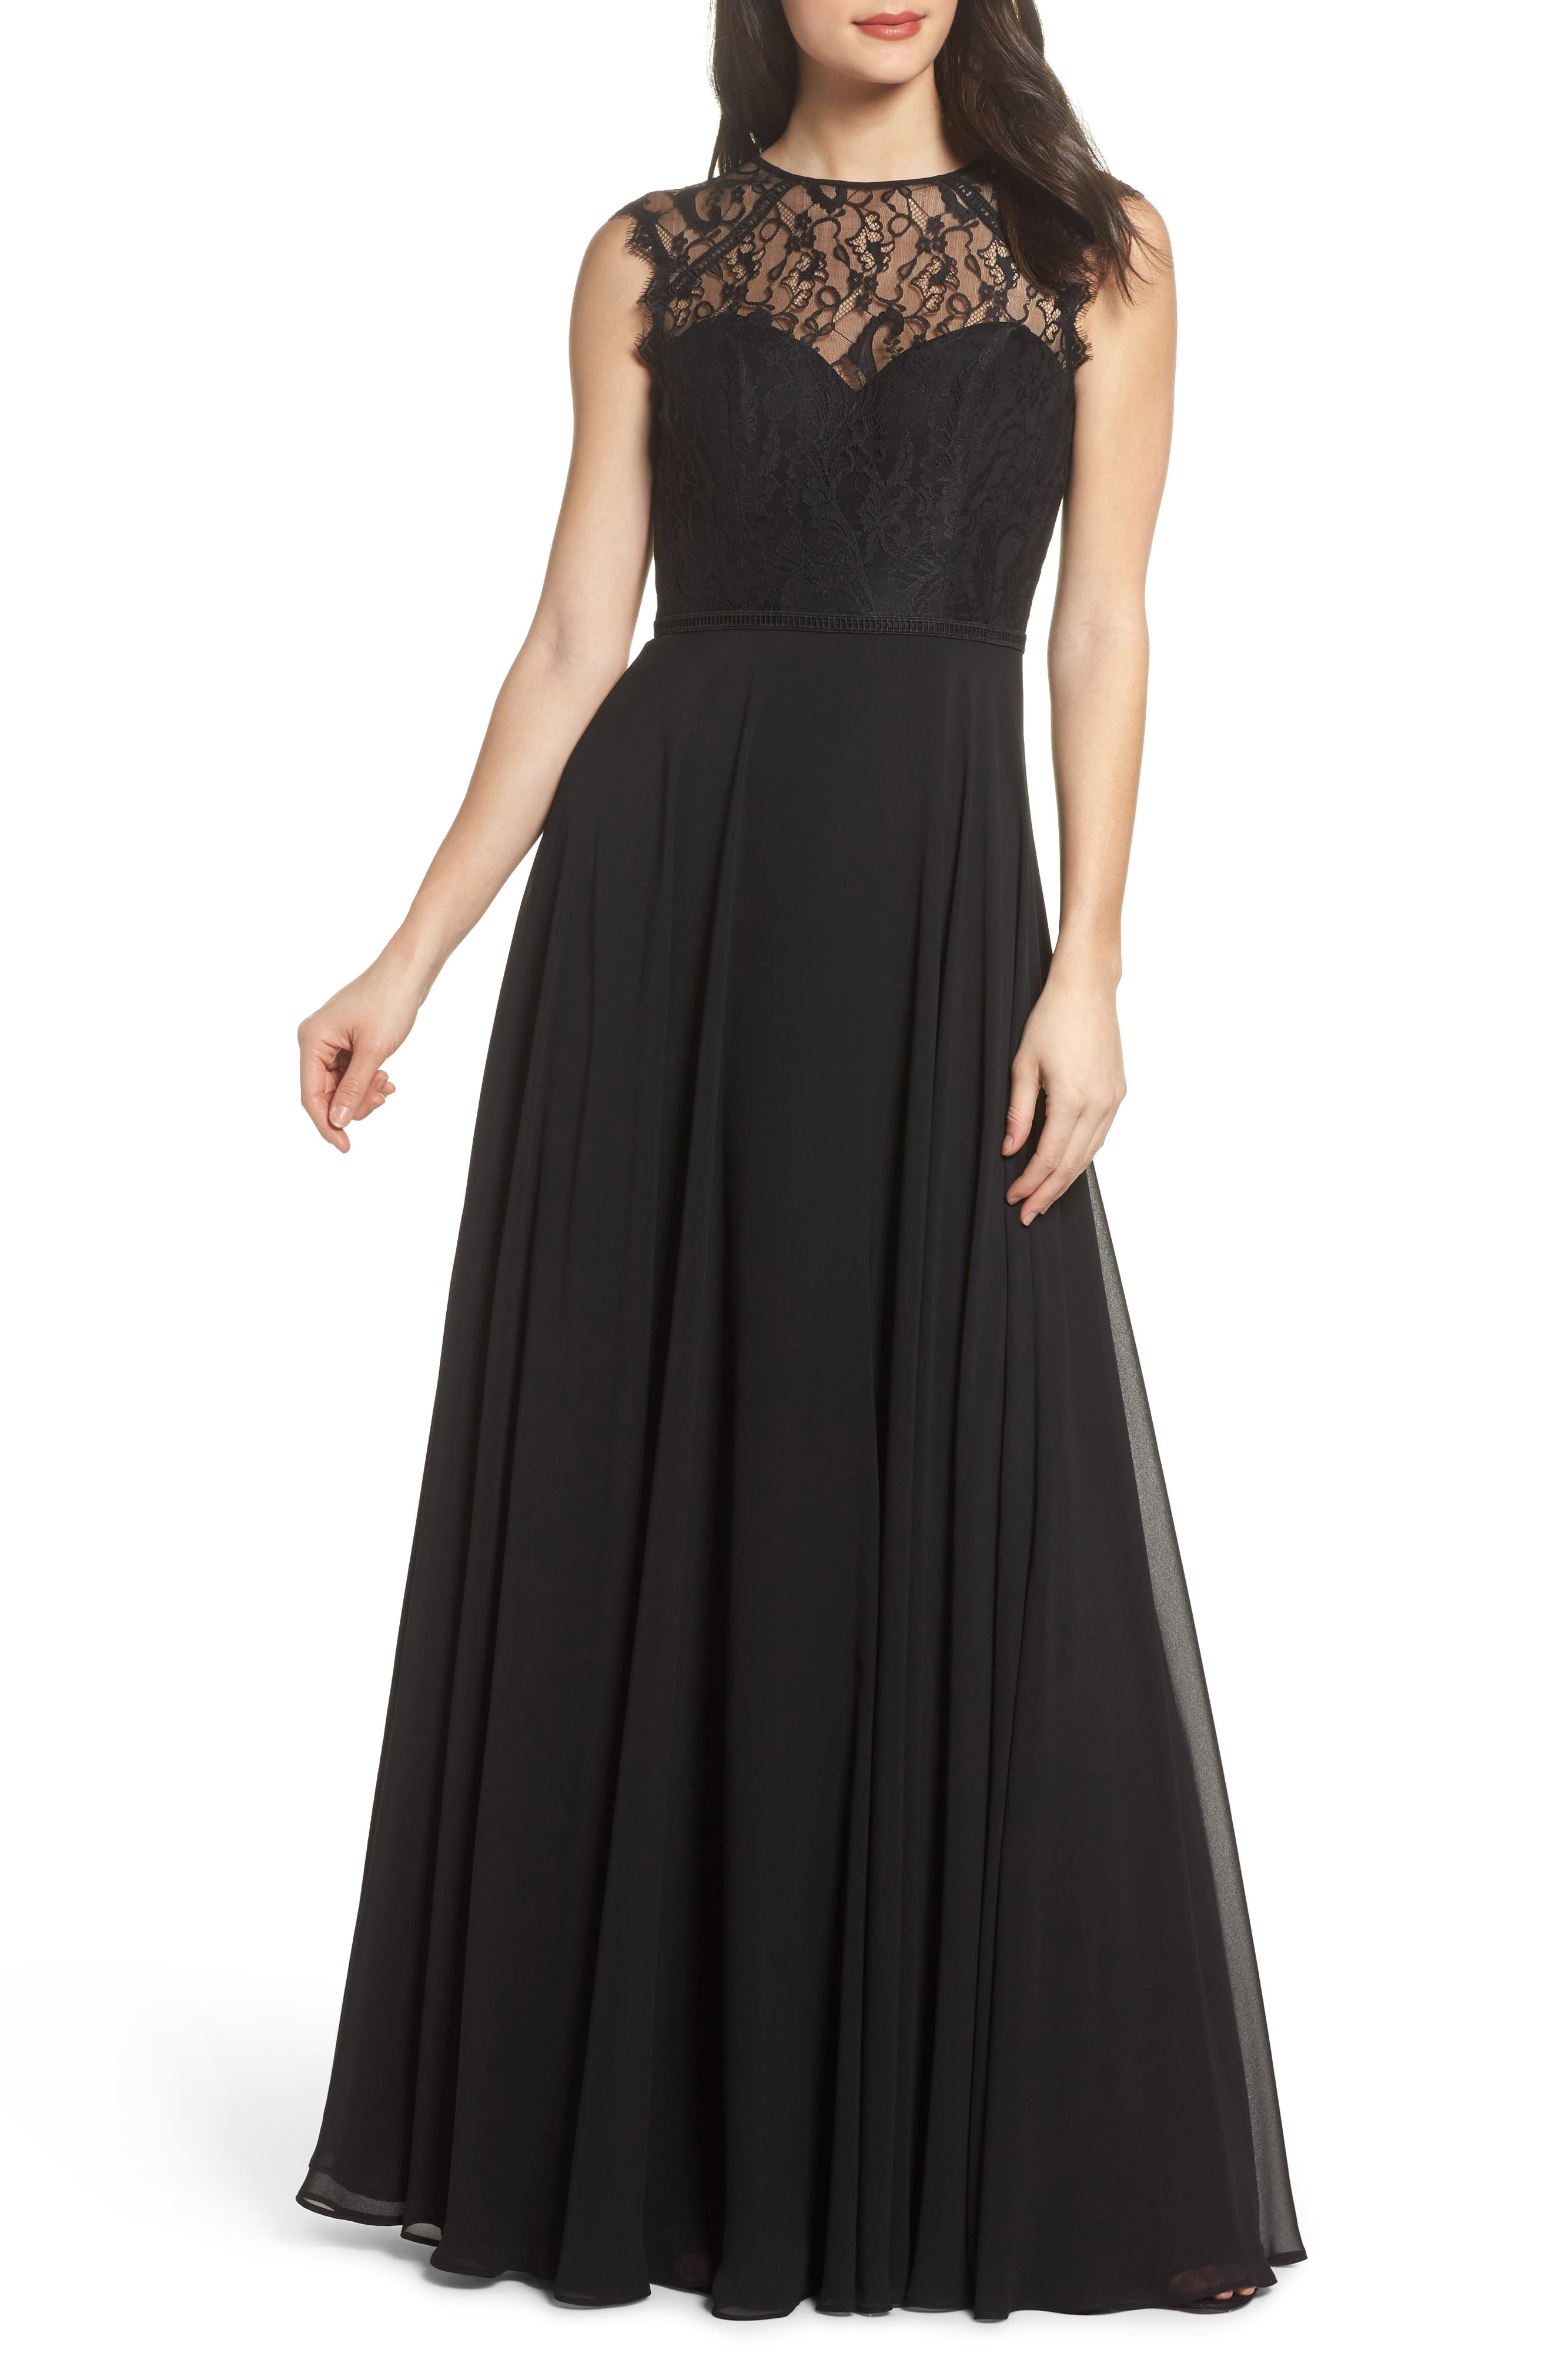 Hayley Paige Occasions Lace & Chiffon Gown, Black